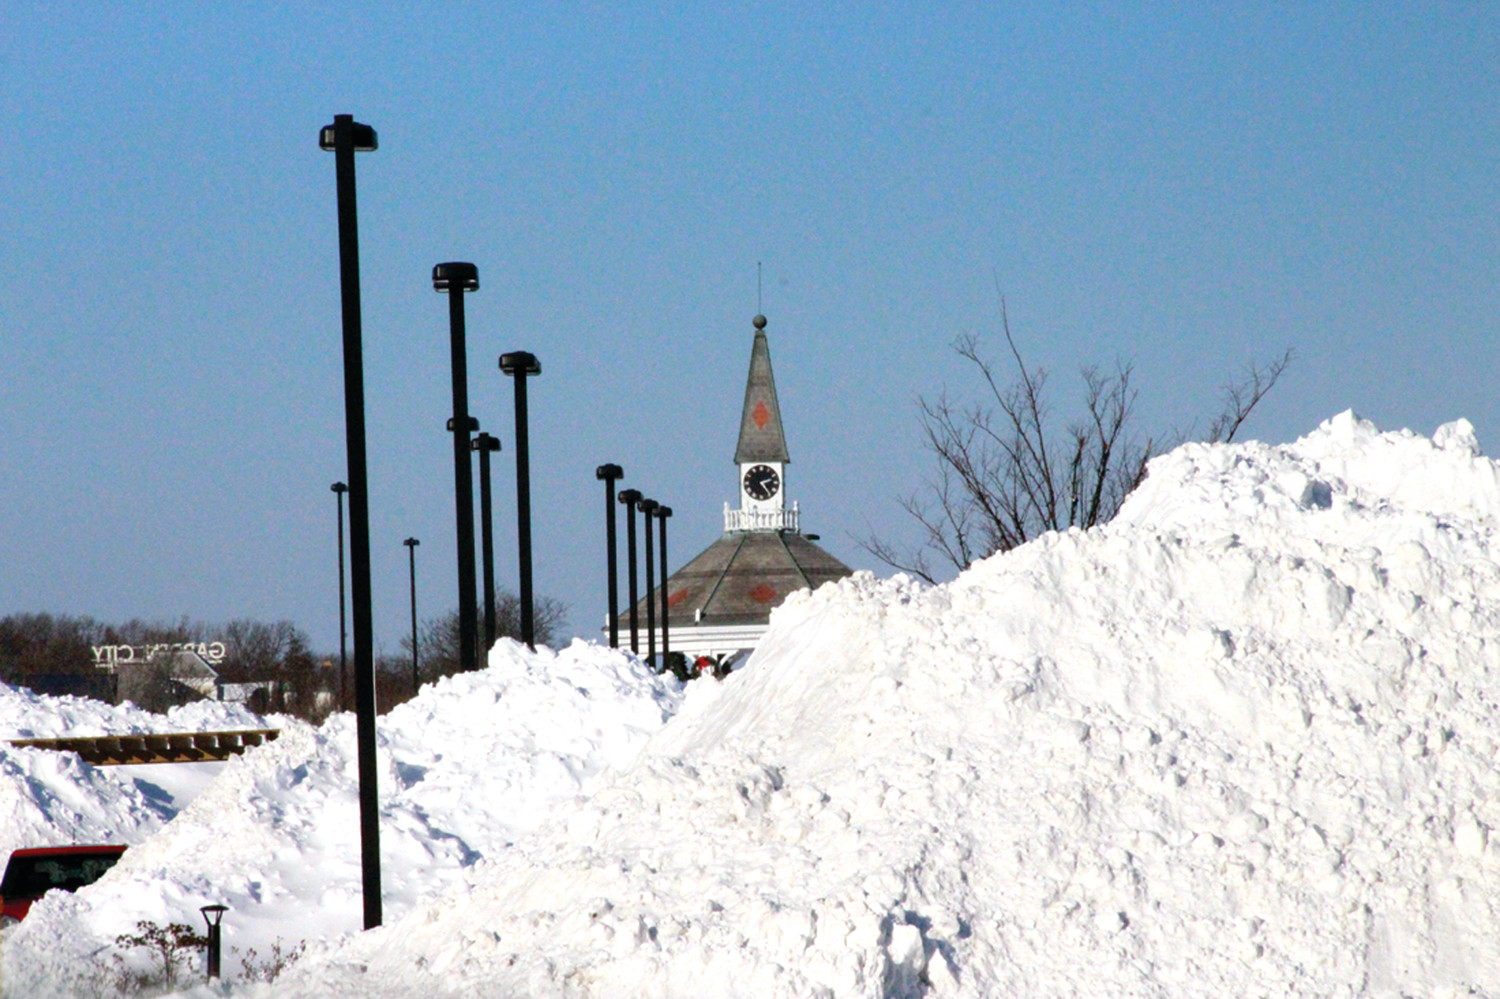 PEERING OVER THE PEAK: Snow piled up as high as the gazebo in Garden City on Friday afternoon.